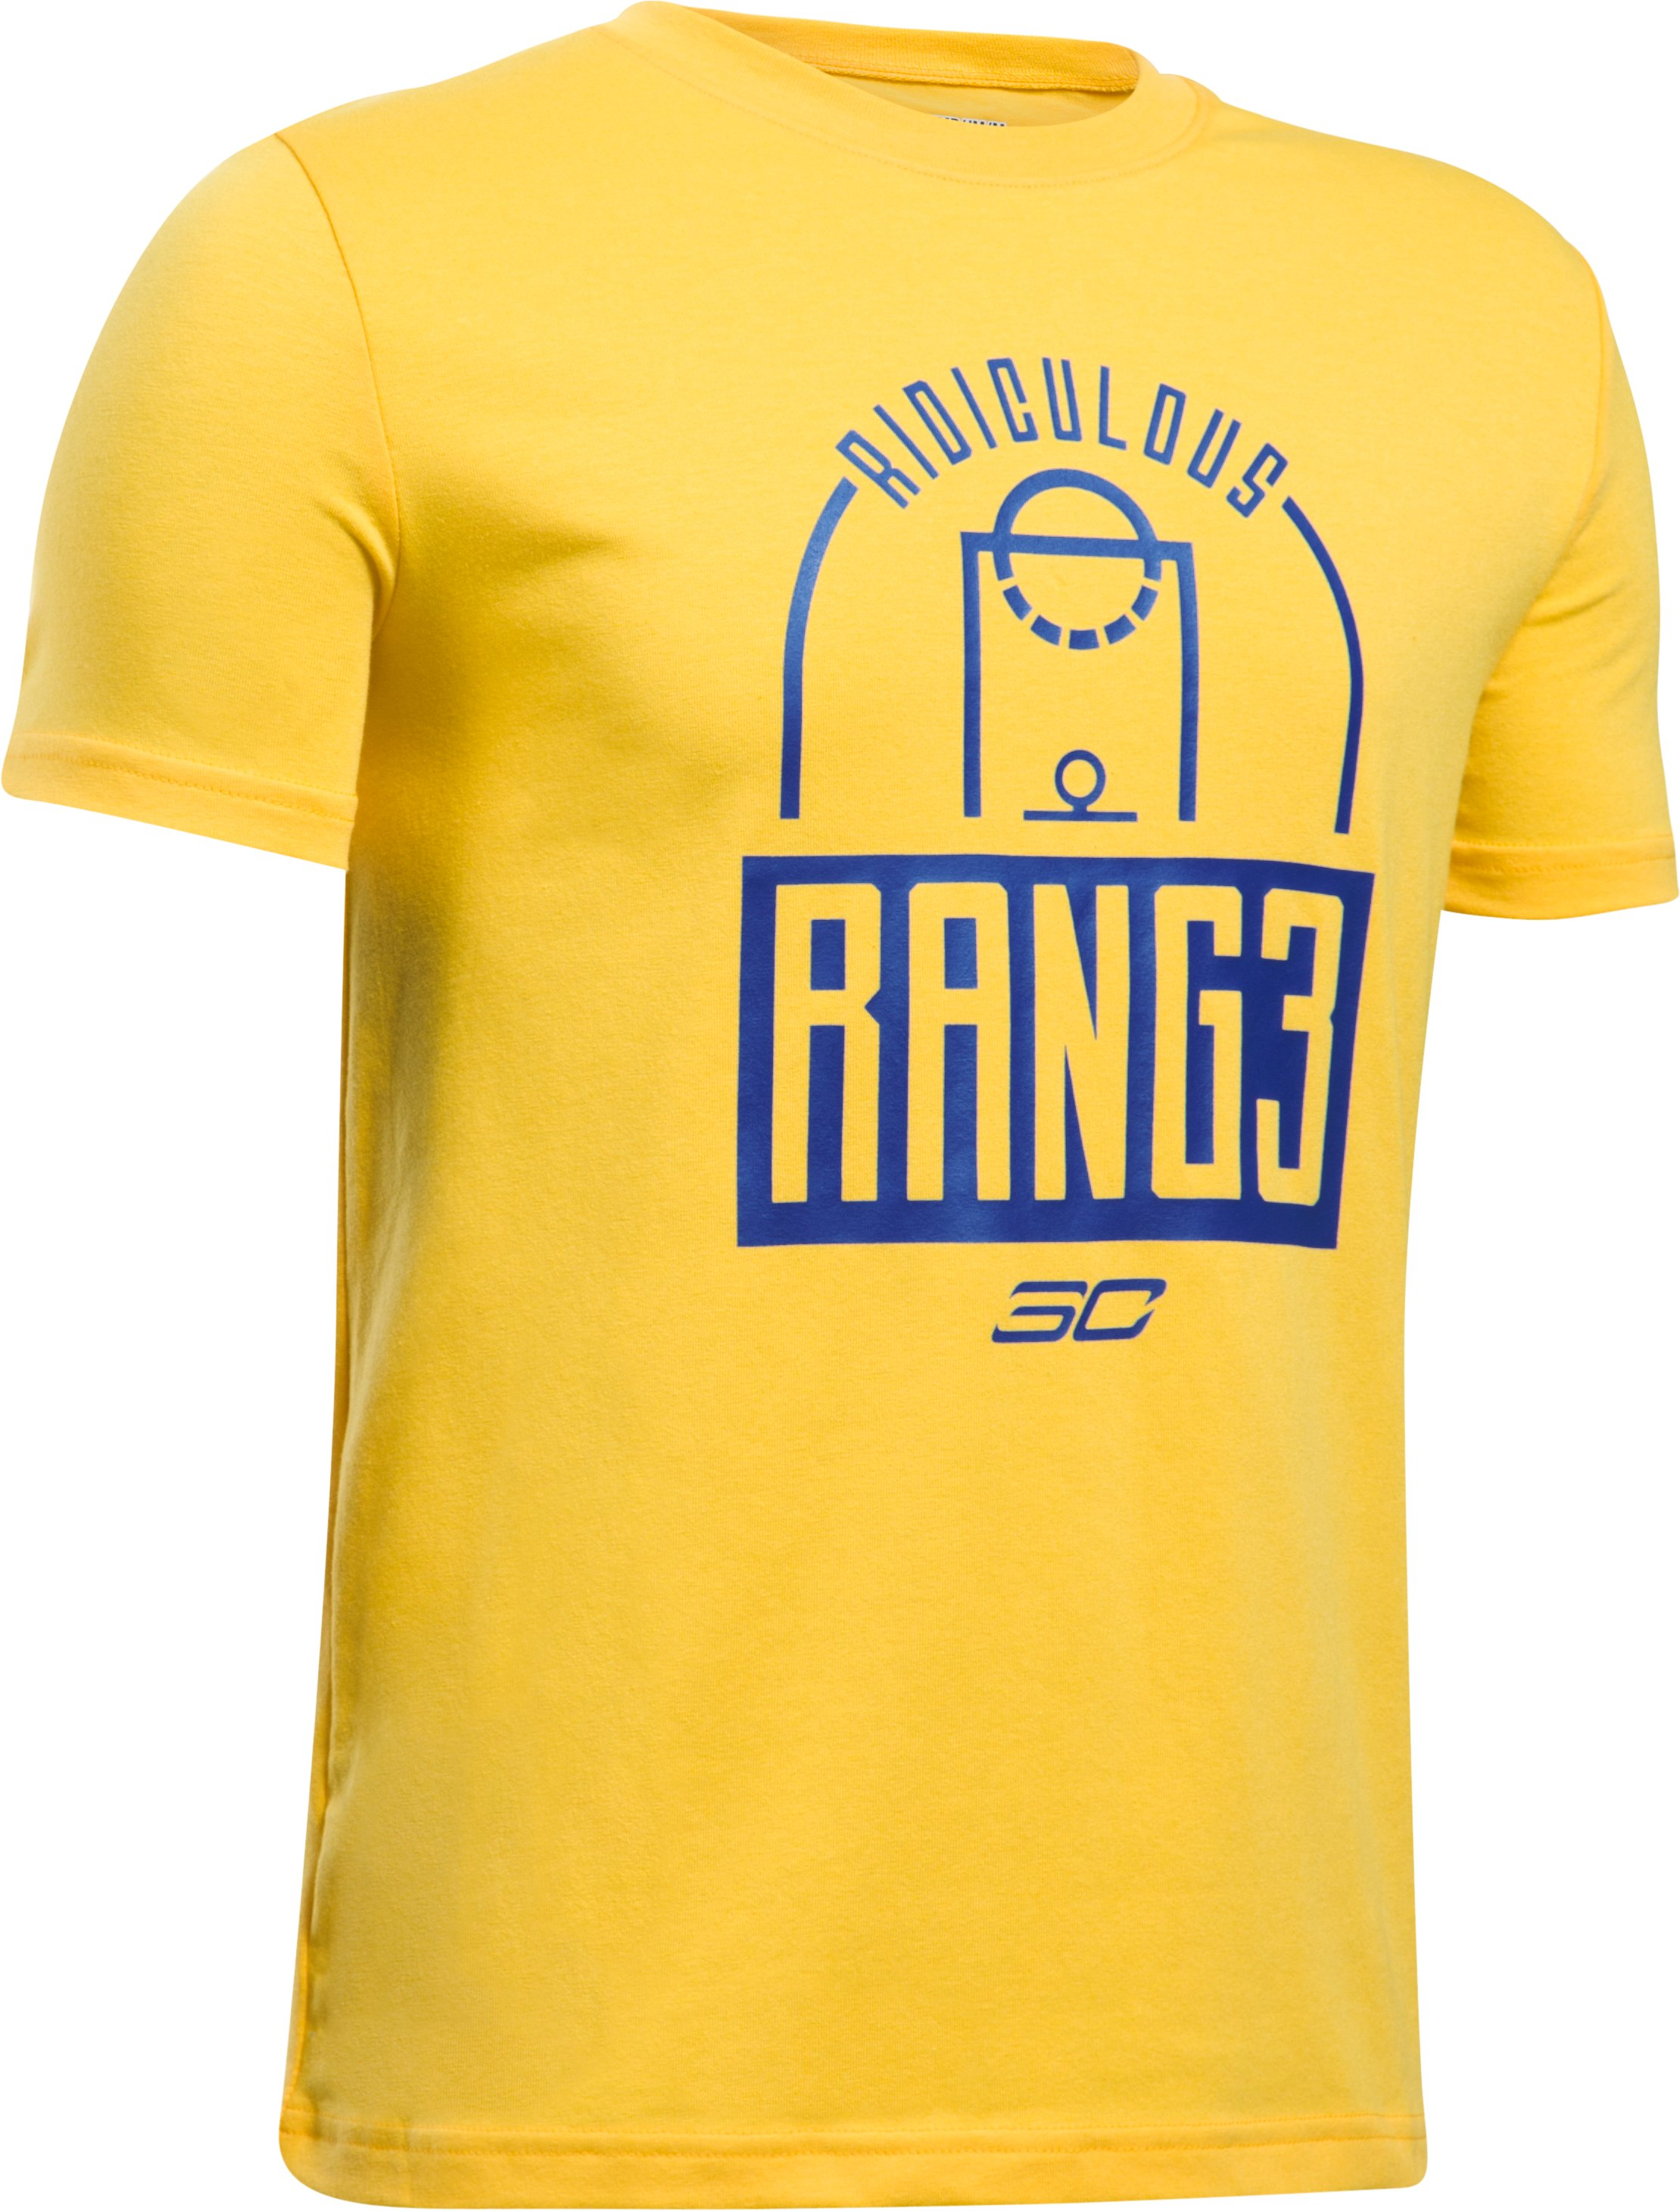 Boys' SC30 Ridiculous Range T-Shirt, Taxi, undefined